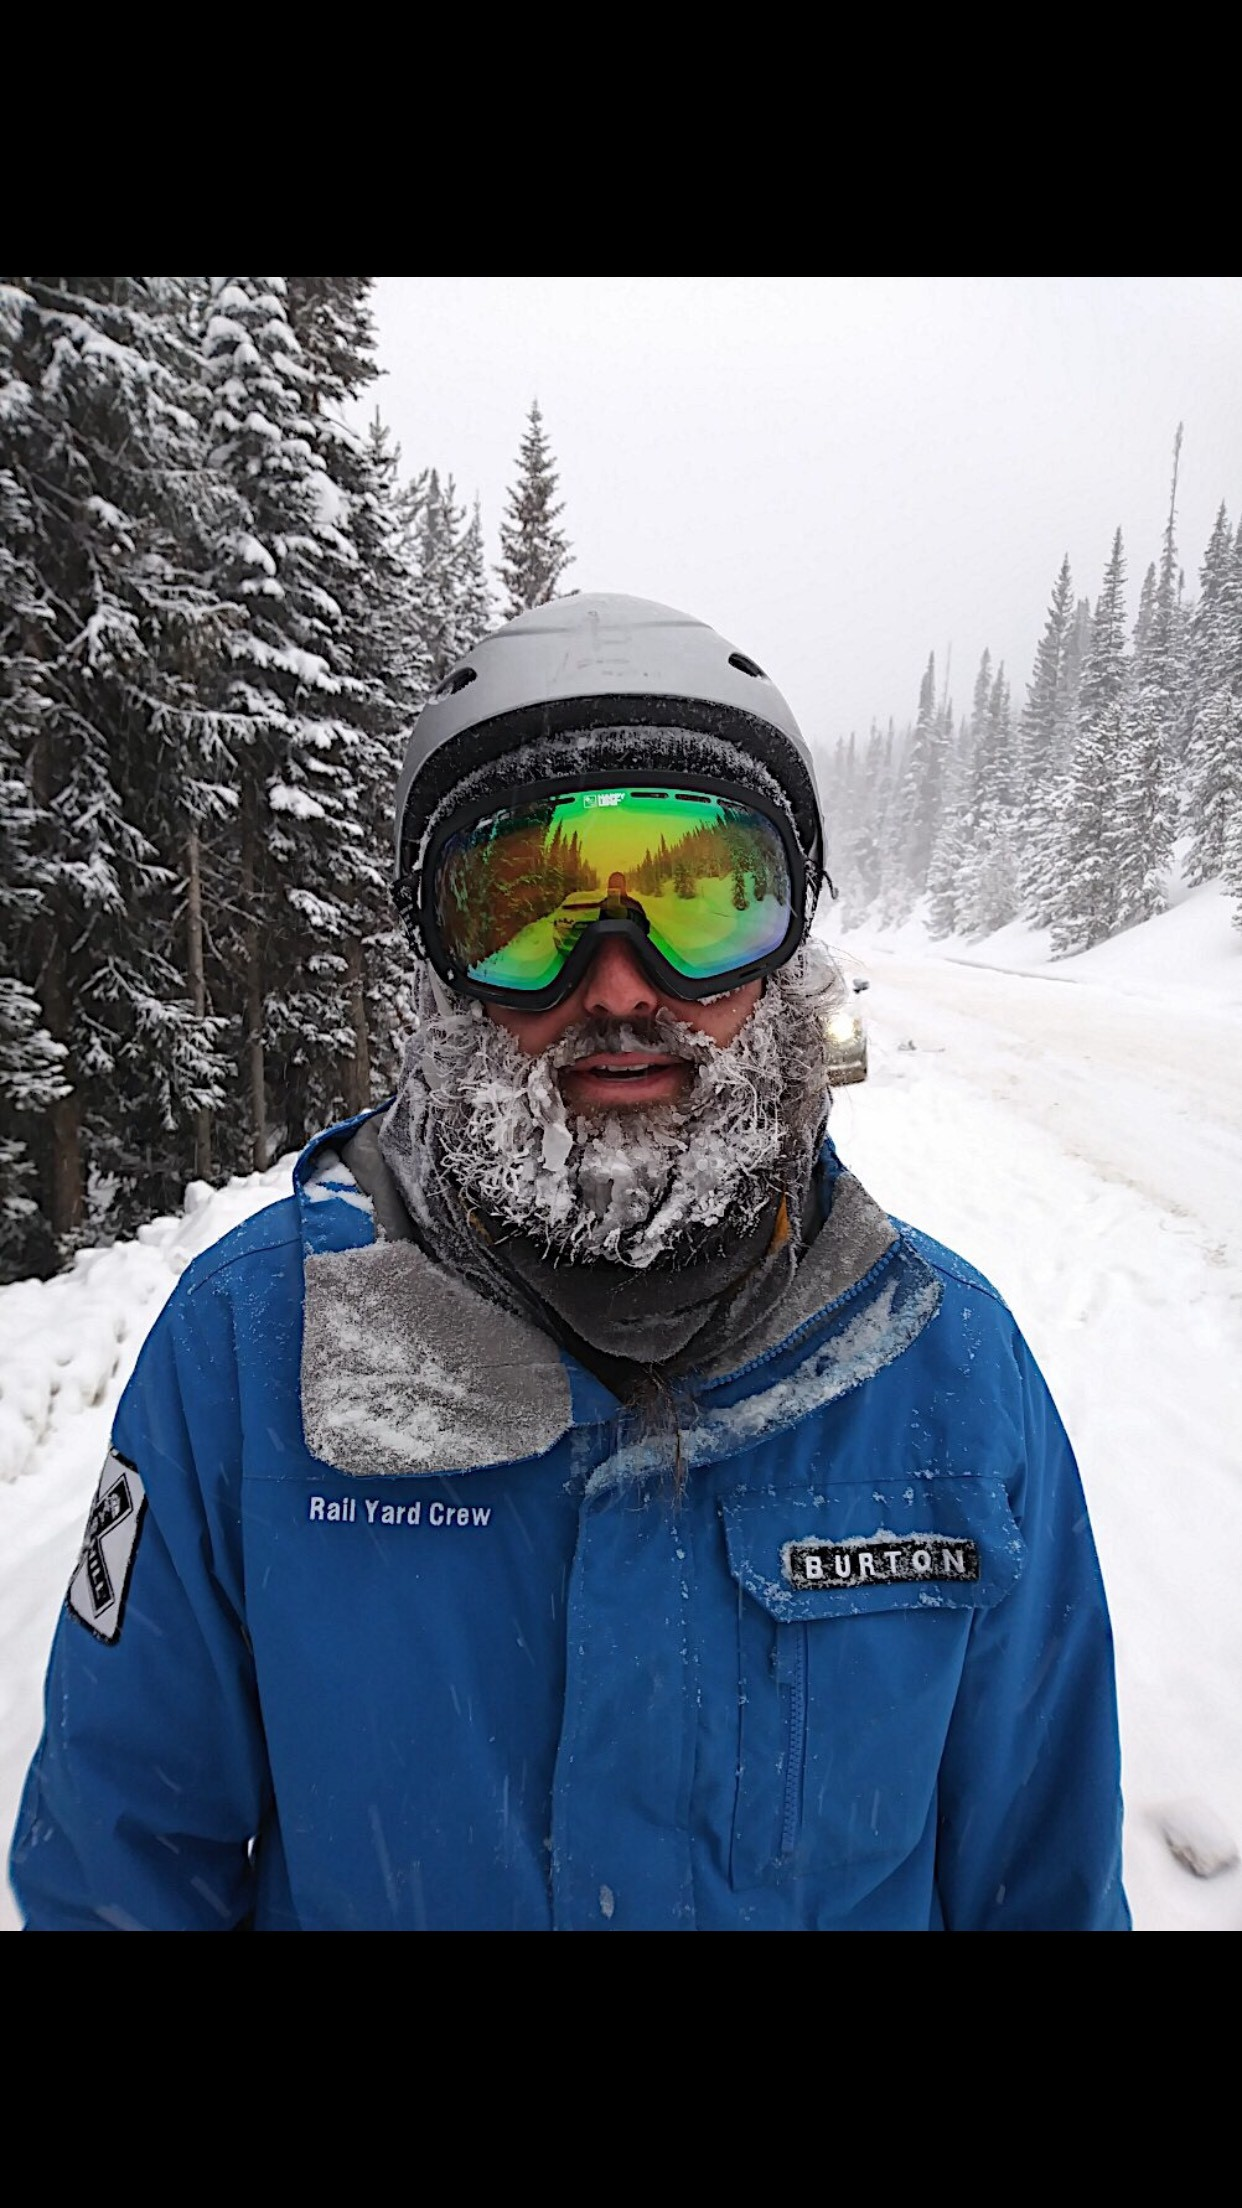 Sweaty person with snow frozen in beard.